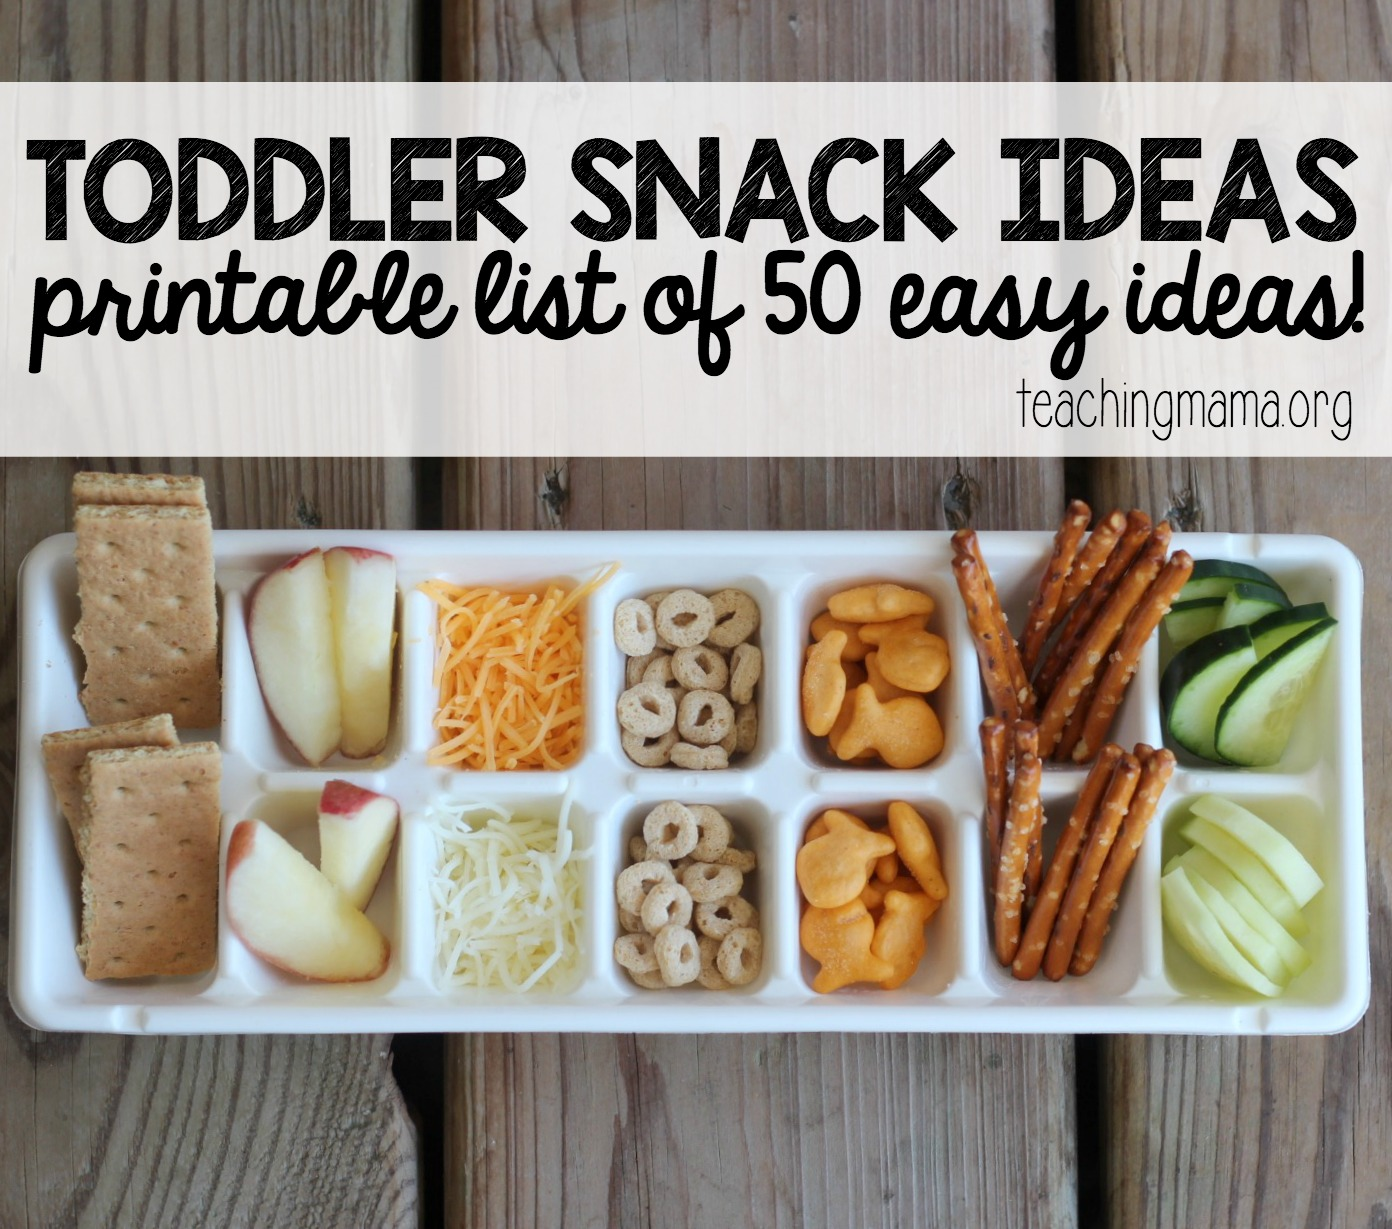 Toddler Snack Ideas main